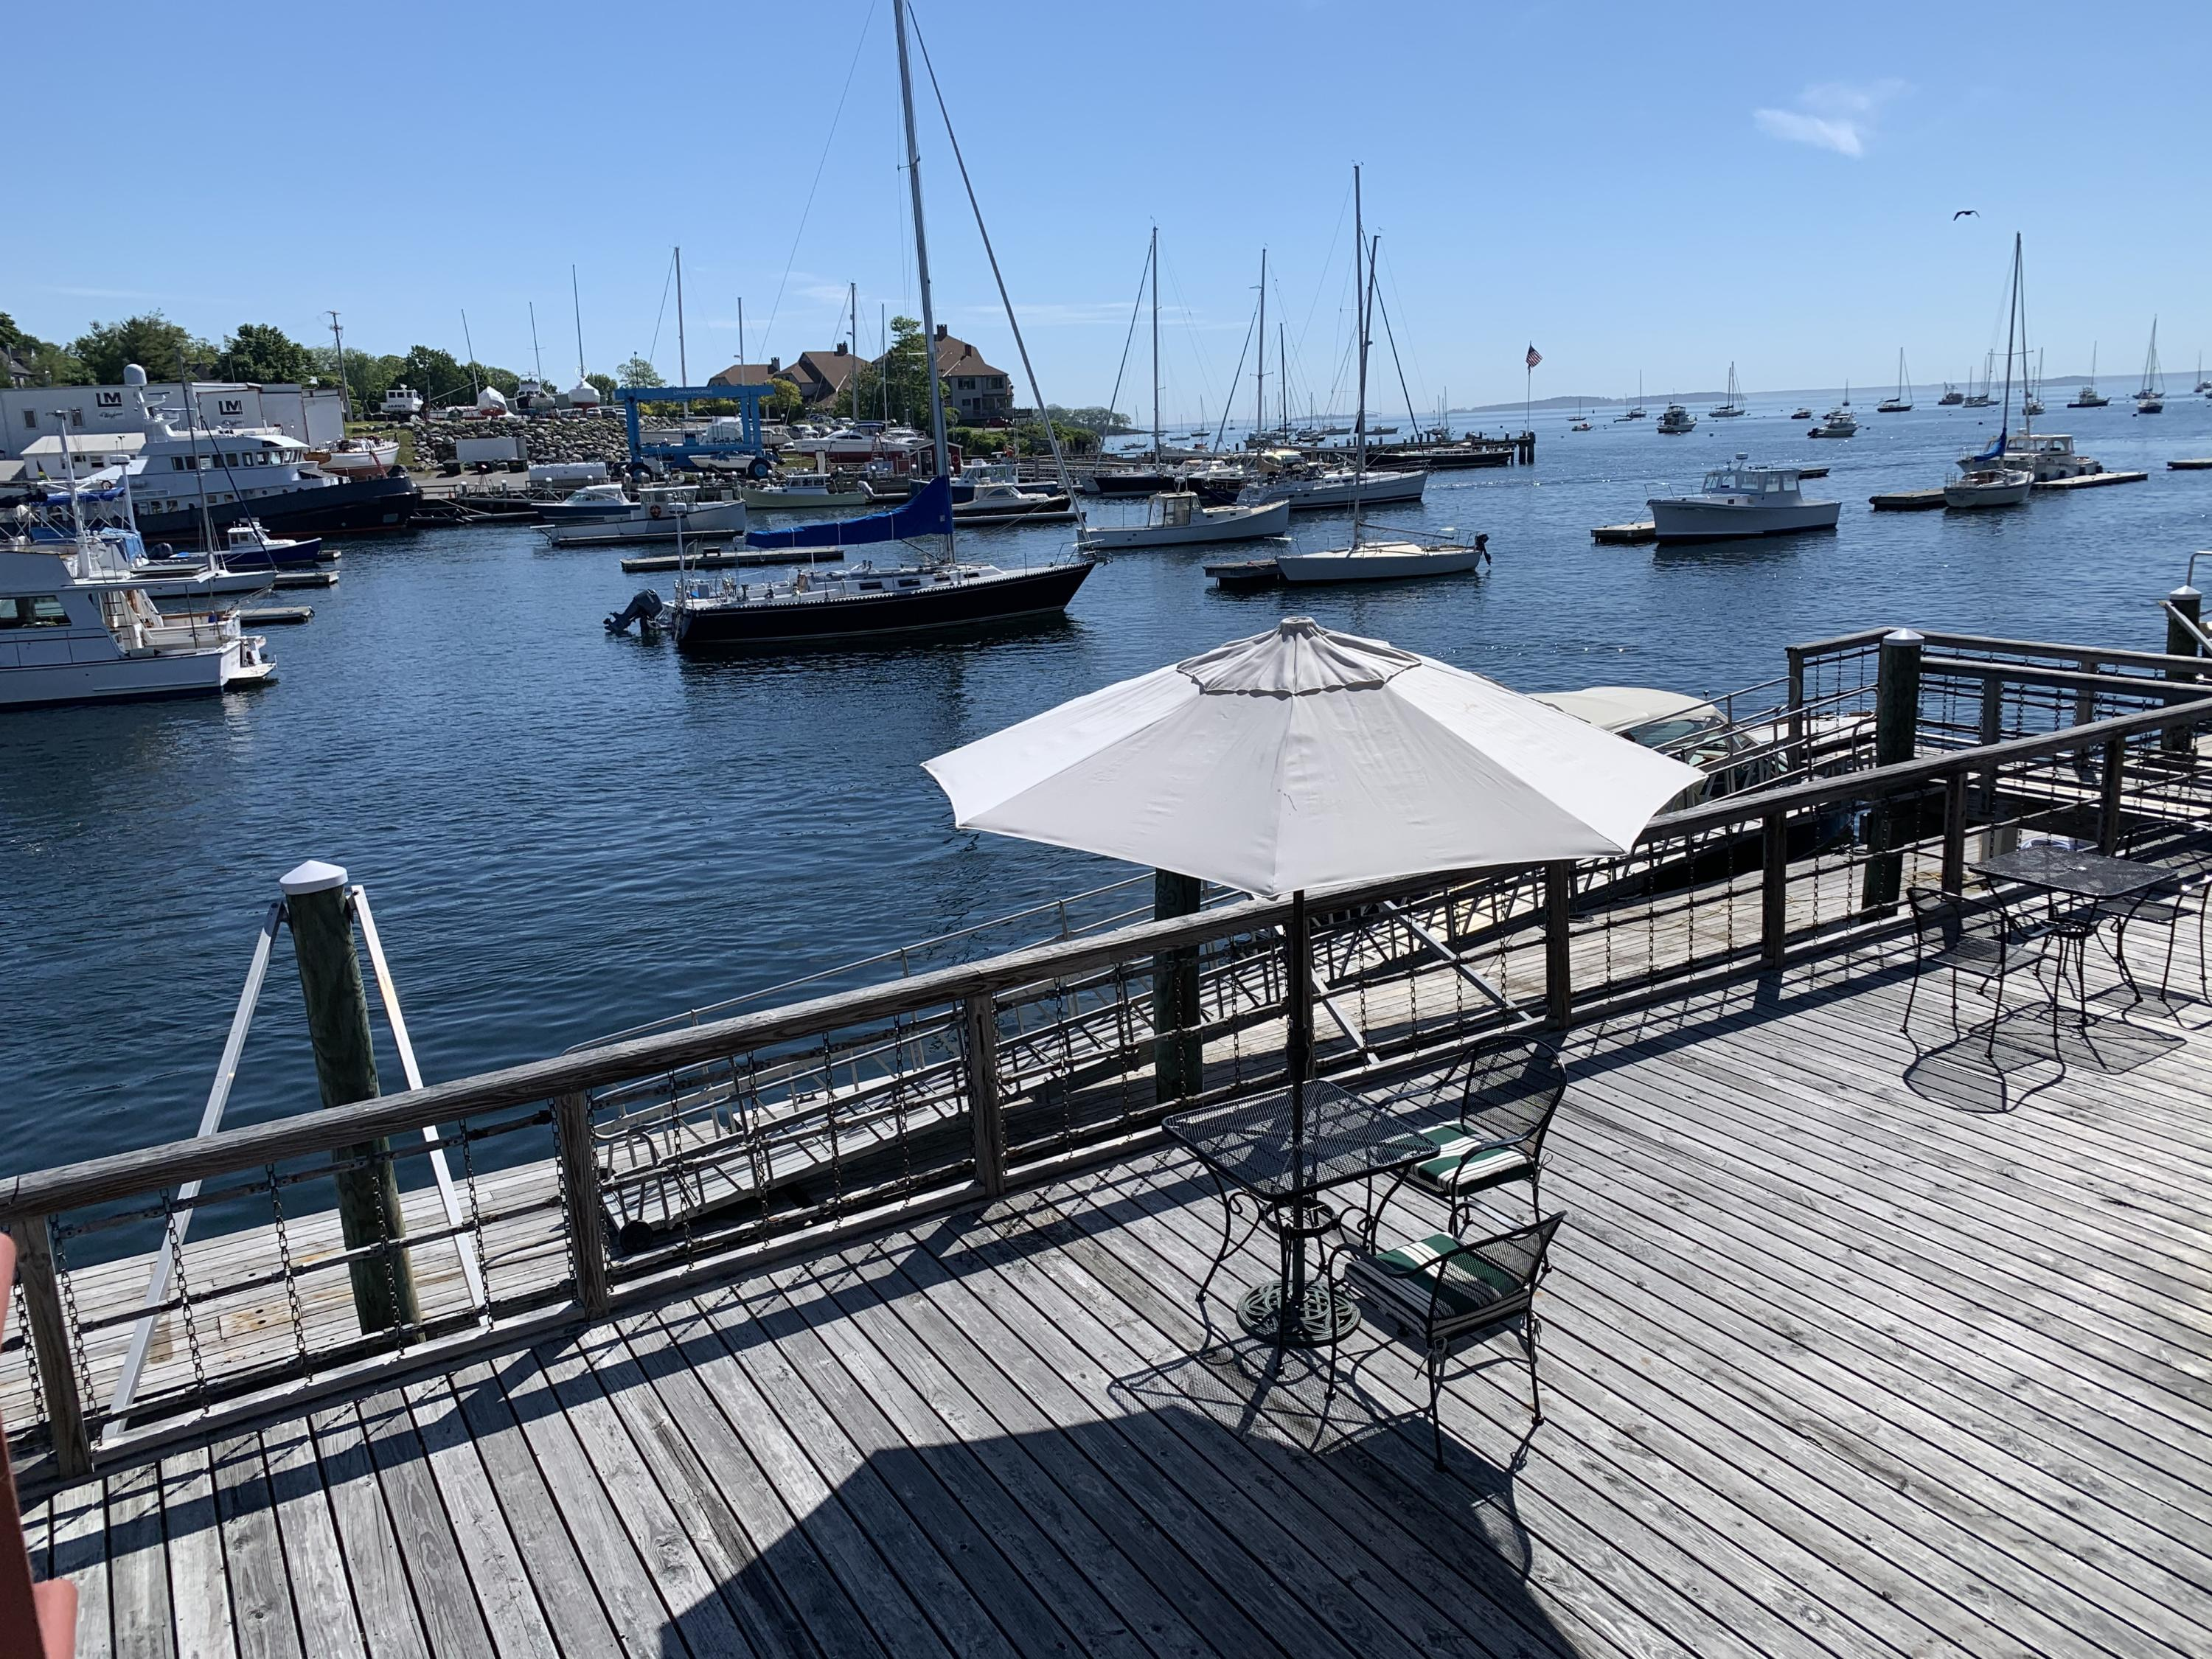 On the water in the heart of Camden, this waterfront townhouse condo has 180' views from the Camden Hills to the harbor islands and beyond. Enjoy watching the boating activity in the harbor from your private deck, or tying up your boat on your share (23' +/-) of the seasonal waterfront dock. Carefully maintained, this property is ready to move in and enjoy. Three levels of bright and airy space with two private decks accessing the spectacular views and salt air. Third floor is accessed by a spiral staircase to the open loft-like space, perfect for an office or bonus room. Harbor Square is nestled among the shops and restaurants of Camden, and a stone's throw to the Camden Yacht Club. Parking garage underneath with two deeded spaces.